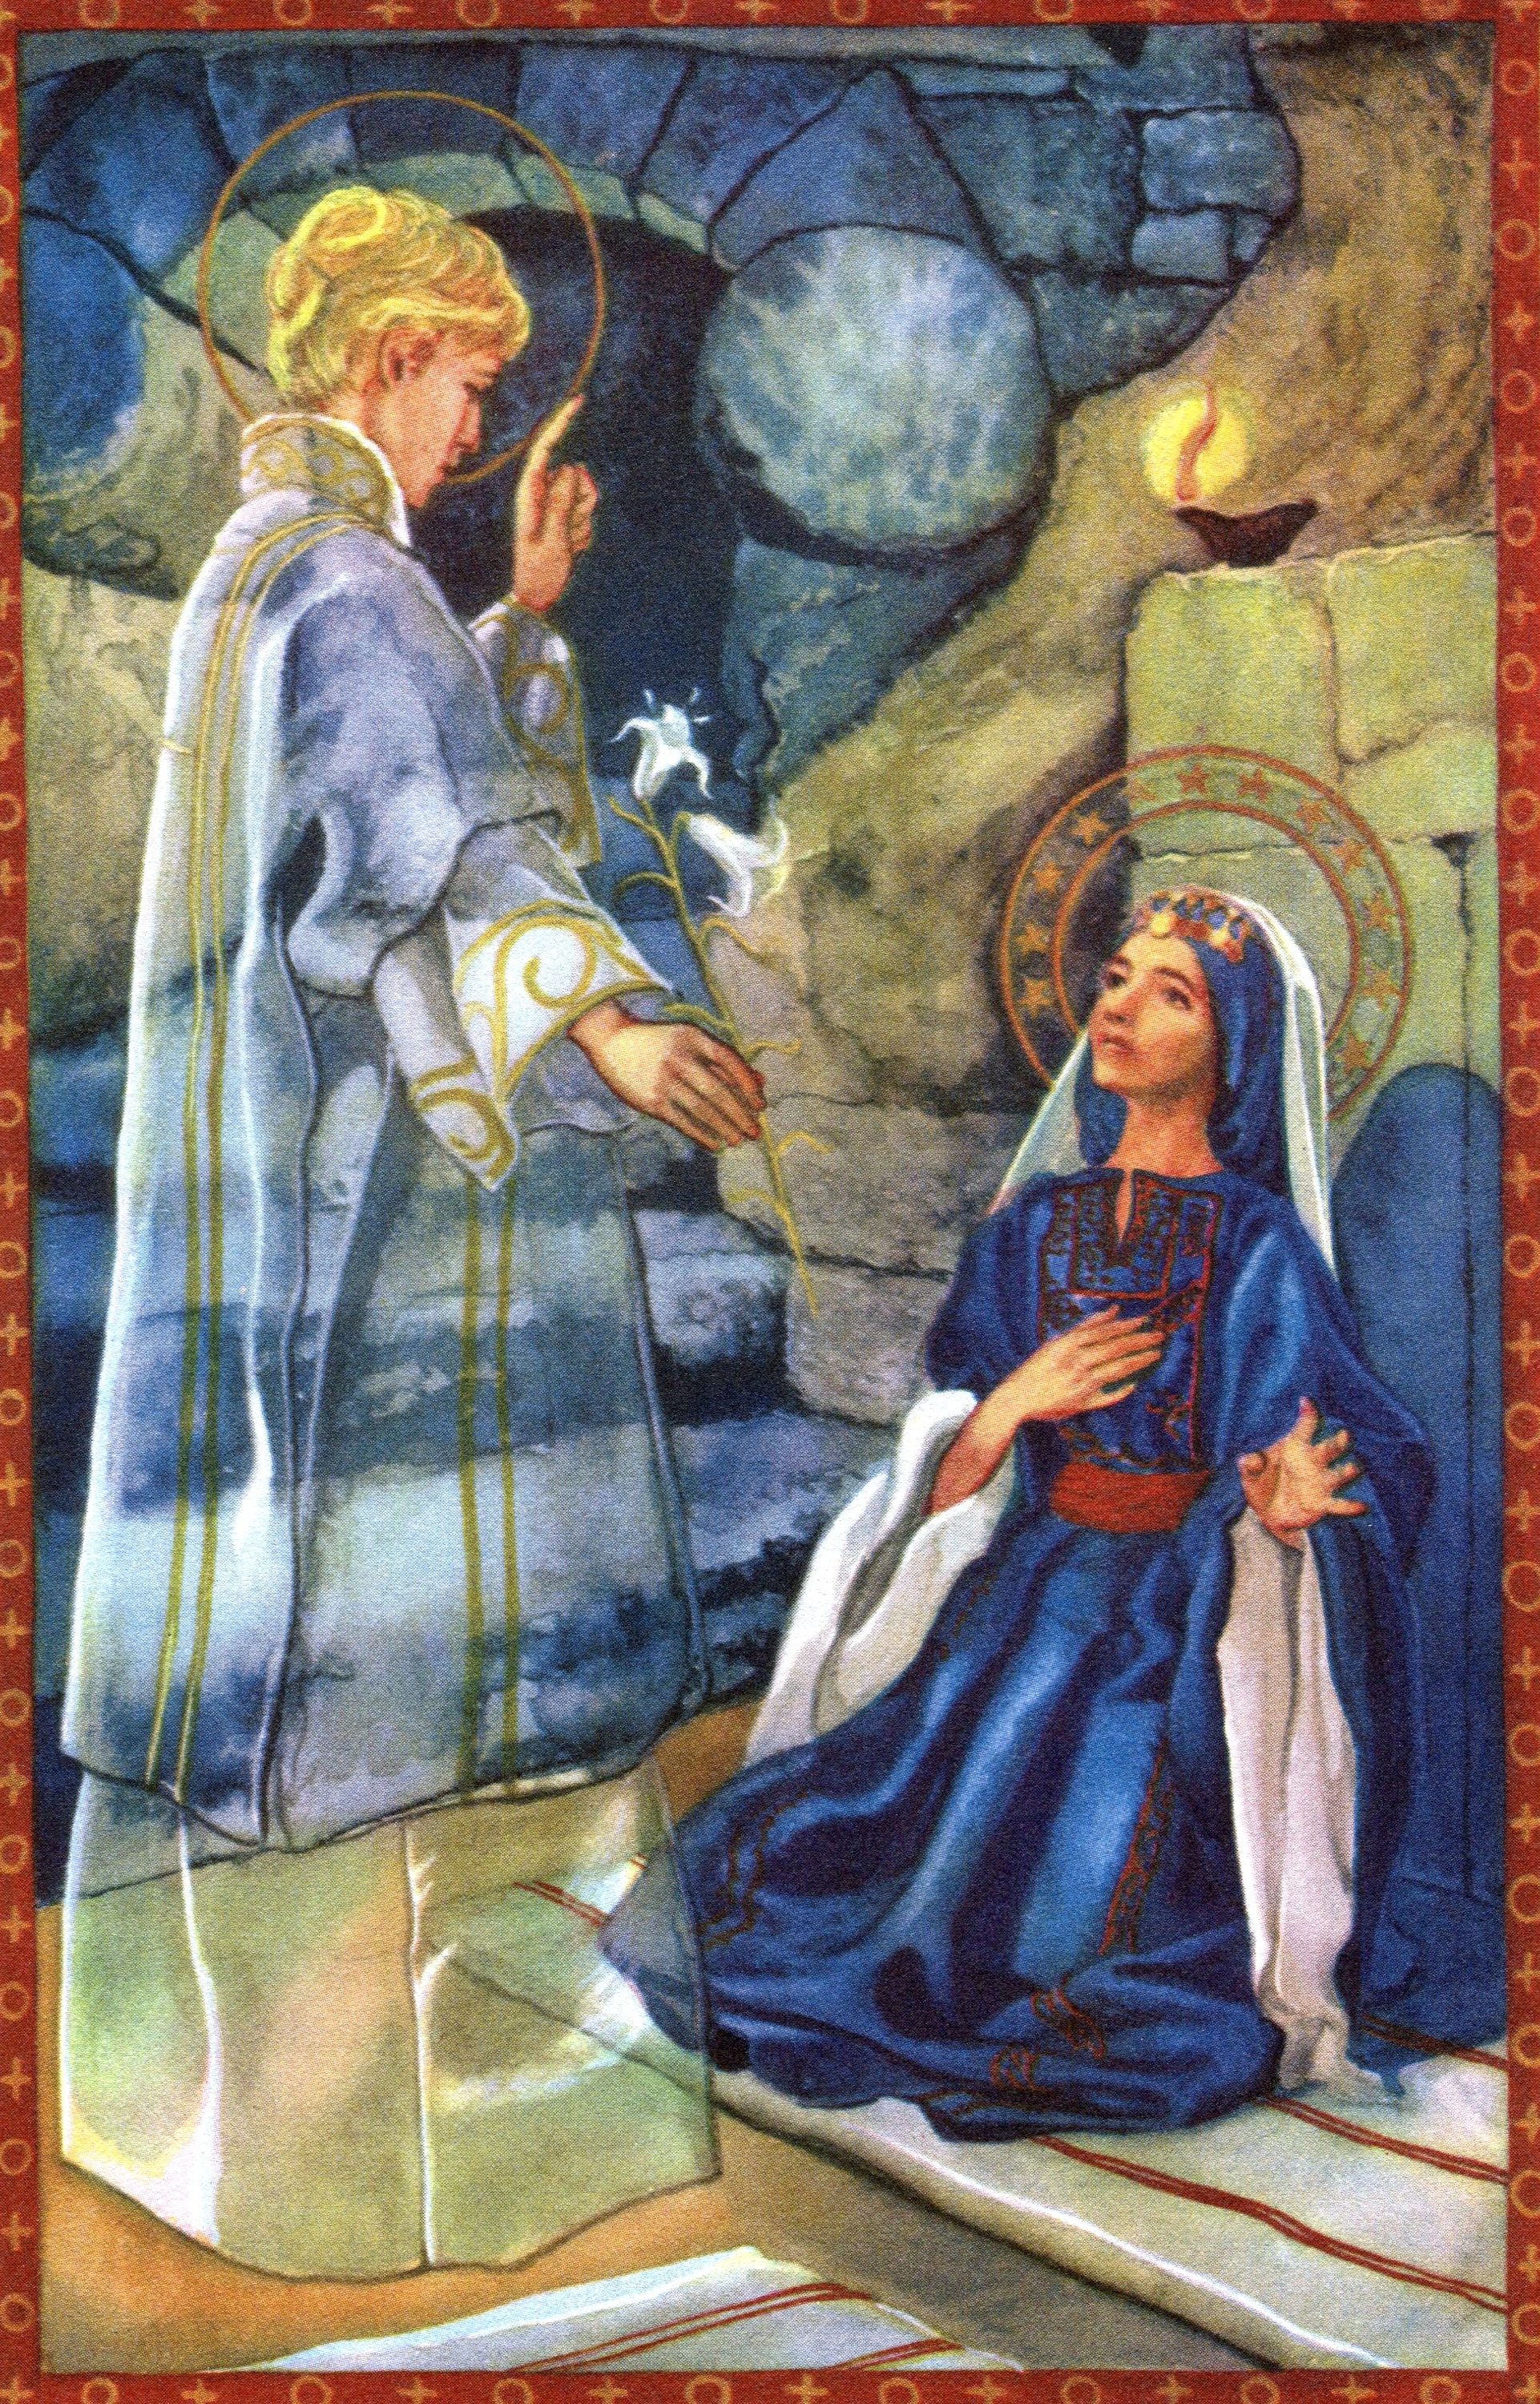 gabriels women The second man had not brought the cloaked woman to kill michael, the dark-haired angel: he had brought the cloaked woman for gabriel, the fair-haired angel.